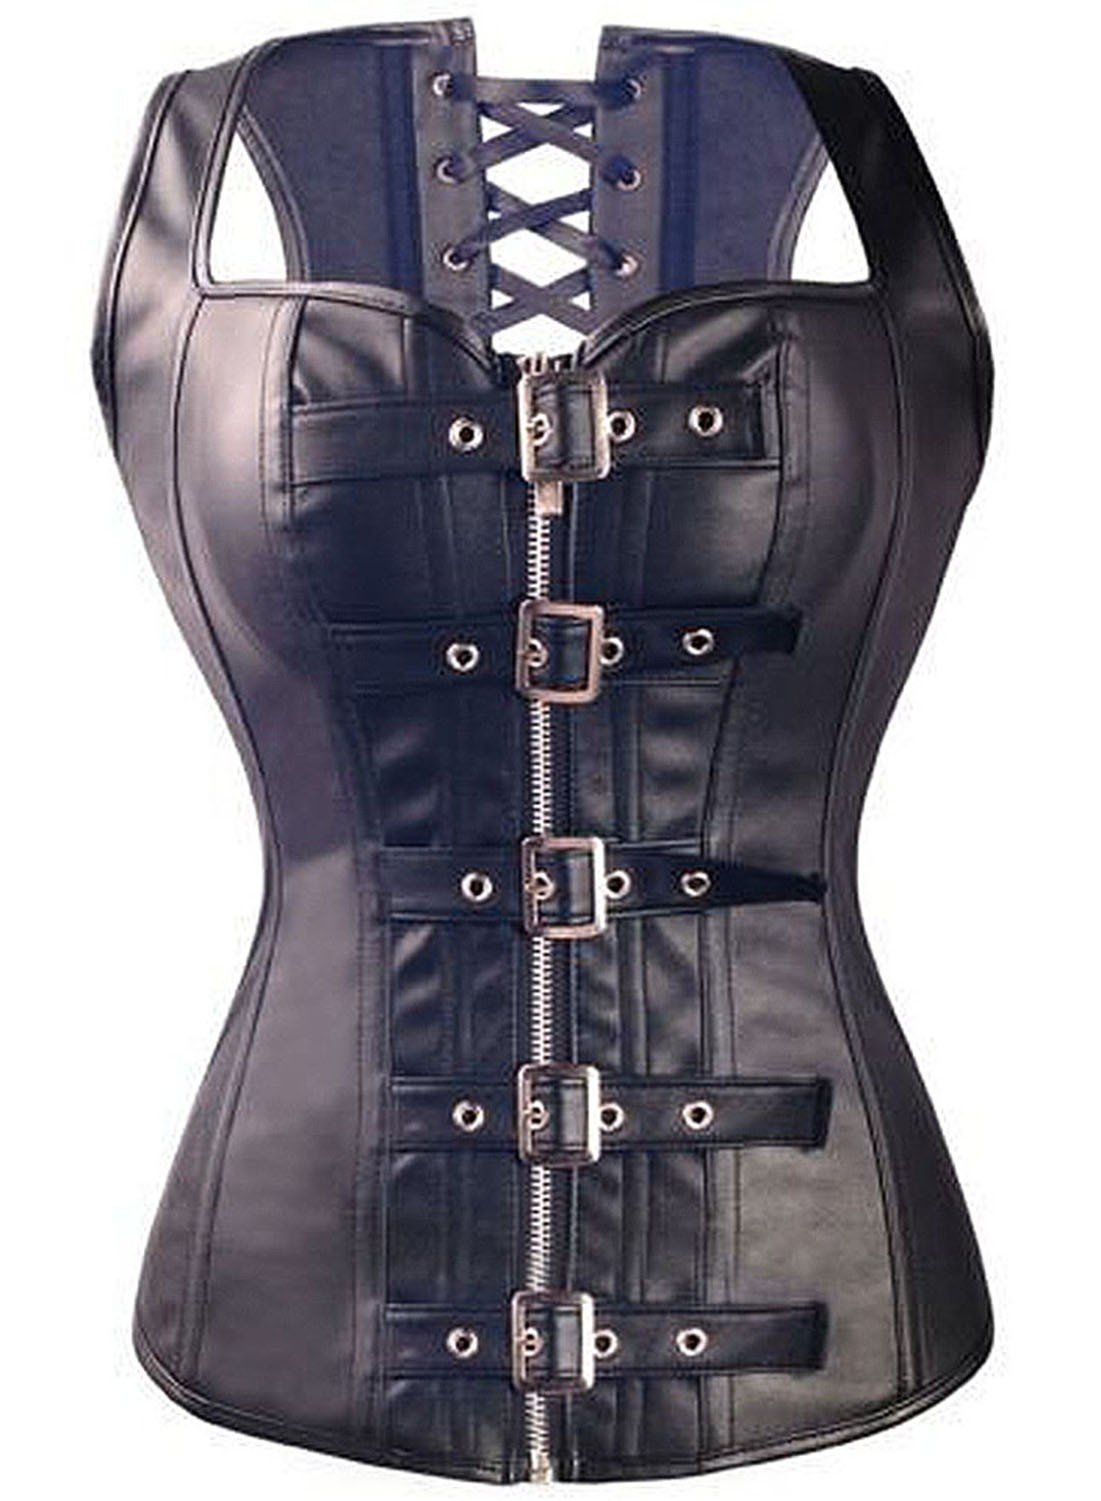 KIWI RATA Women's Punk Rock Faux Leather Buckle-up Corset Bustier Basque with G-String 3